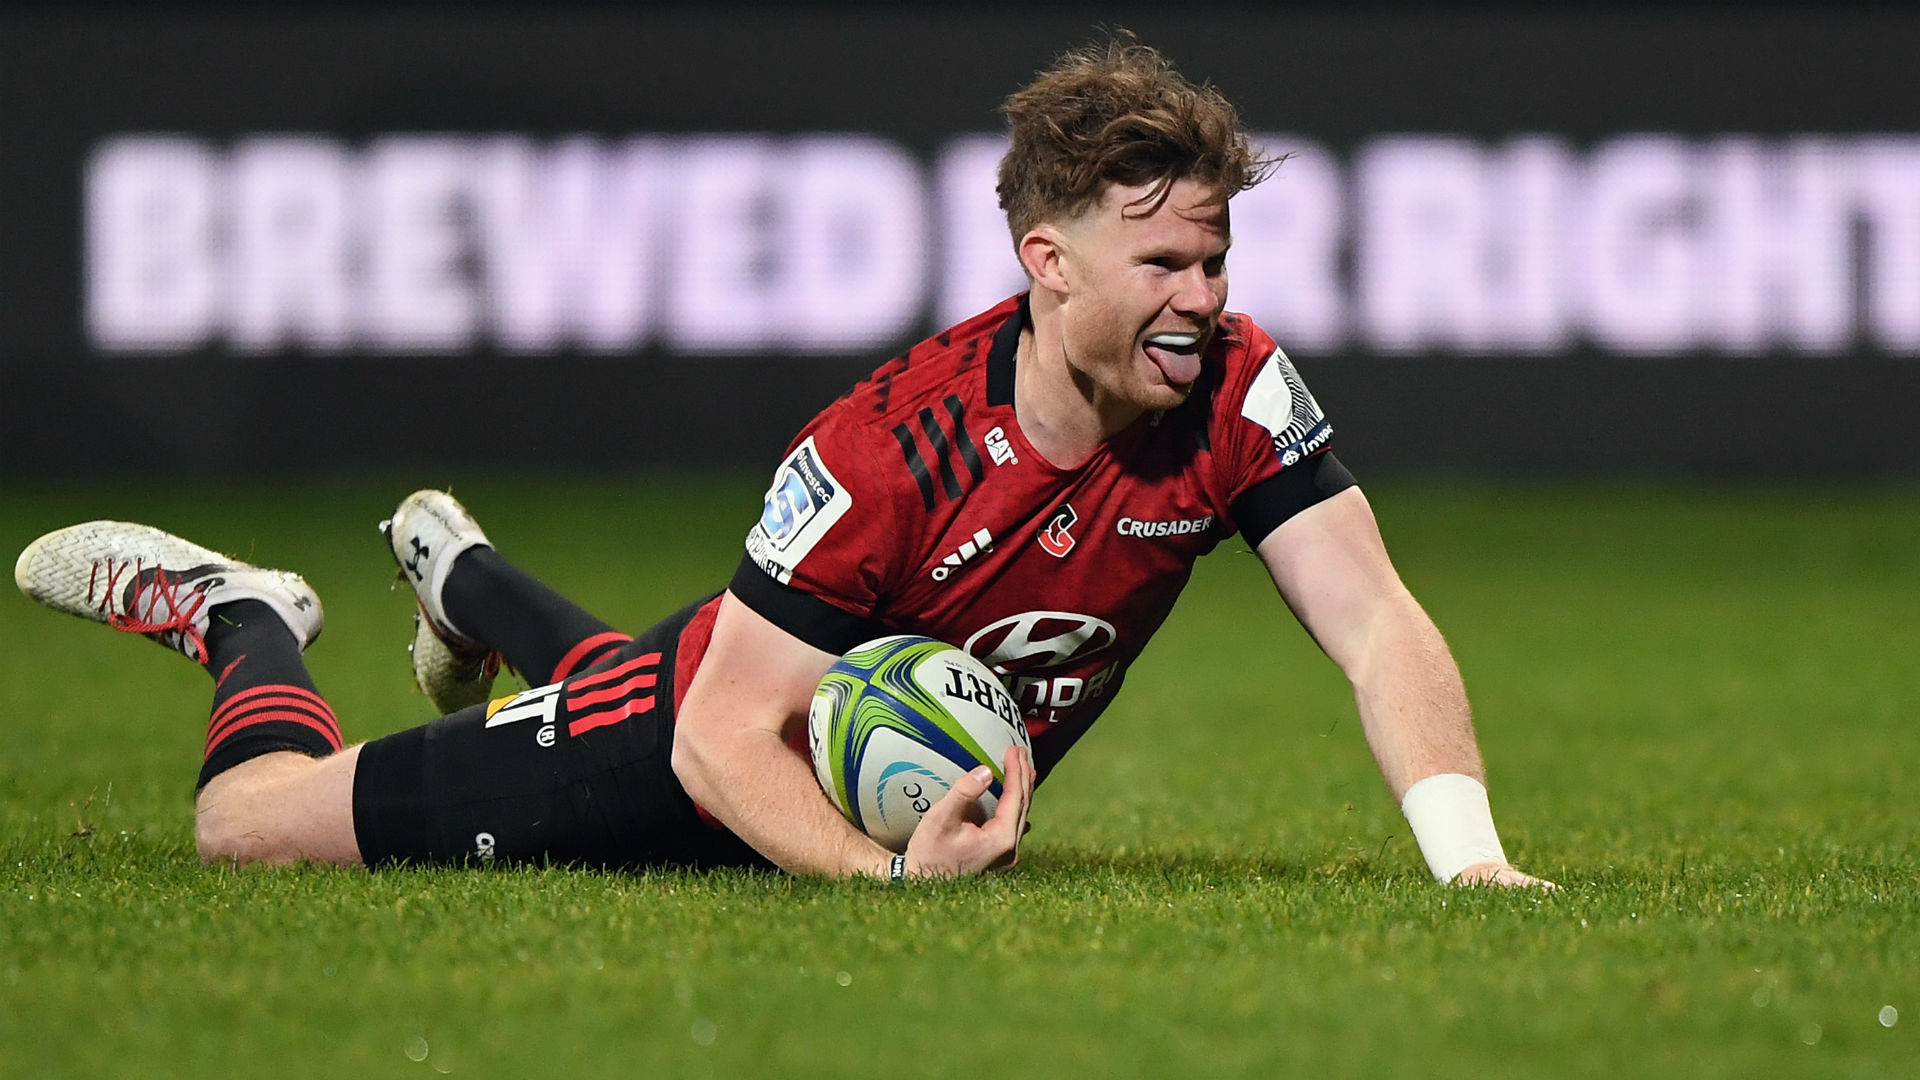 Crusaders end Blues' winning start to stay perfect